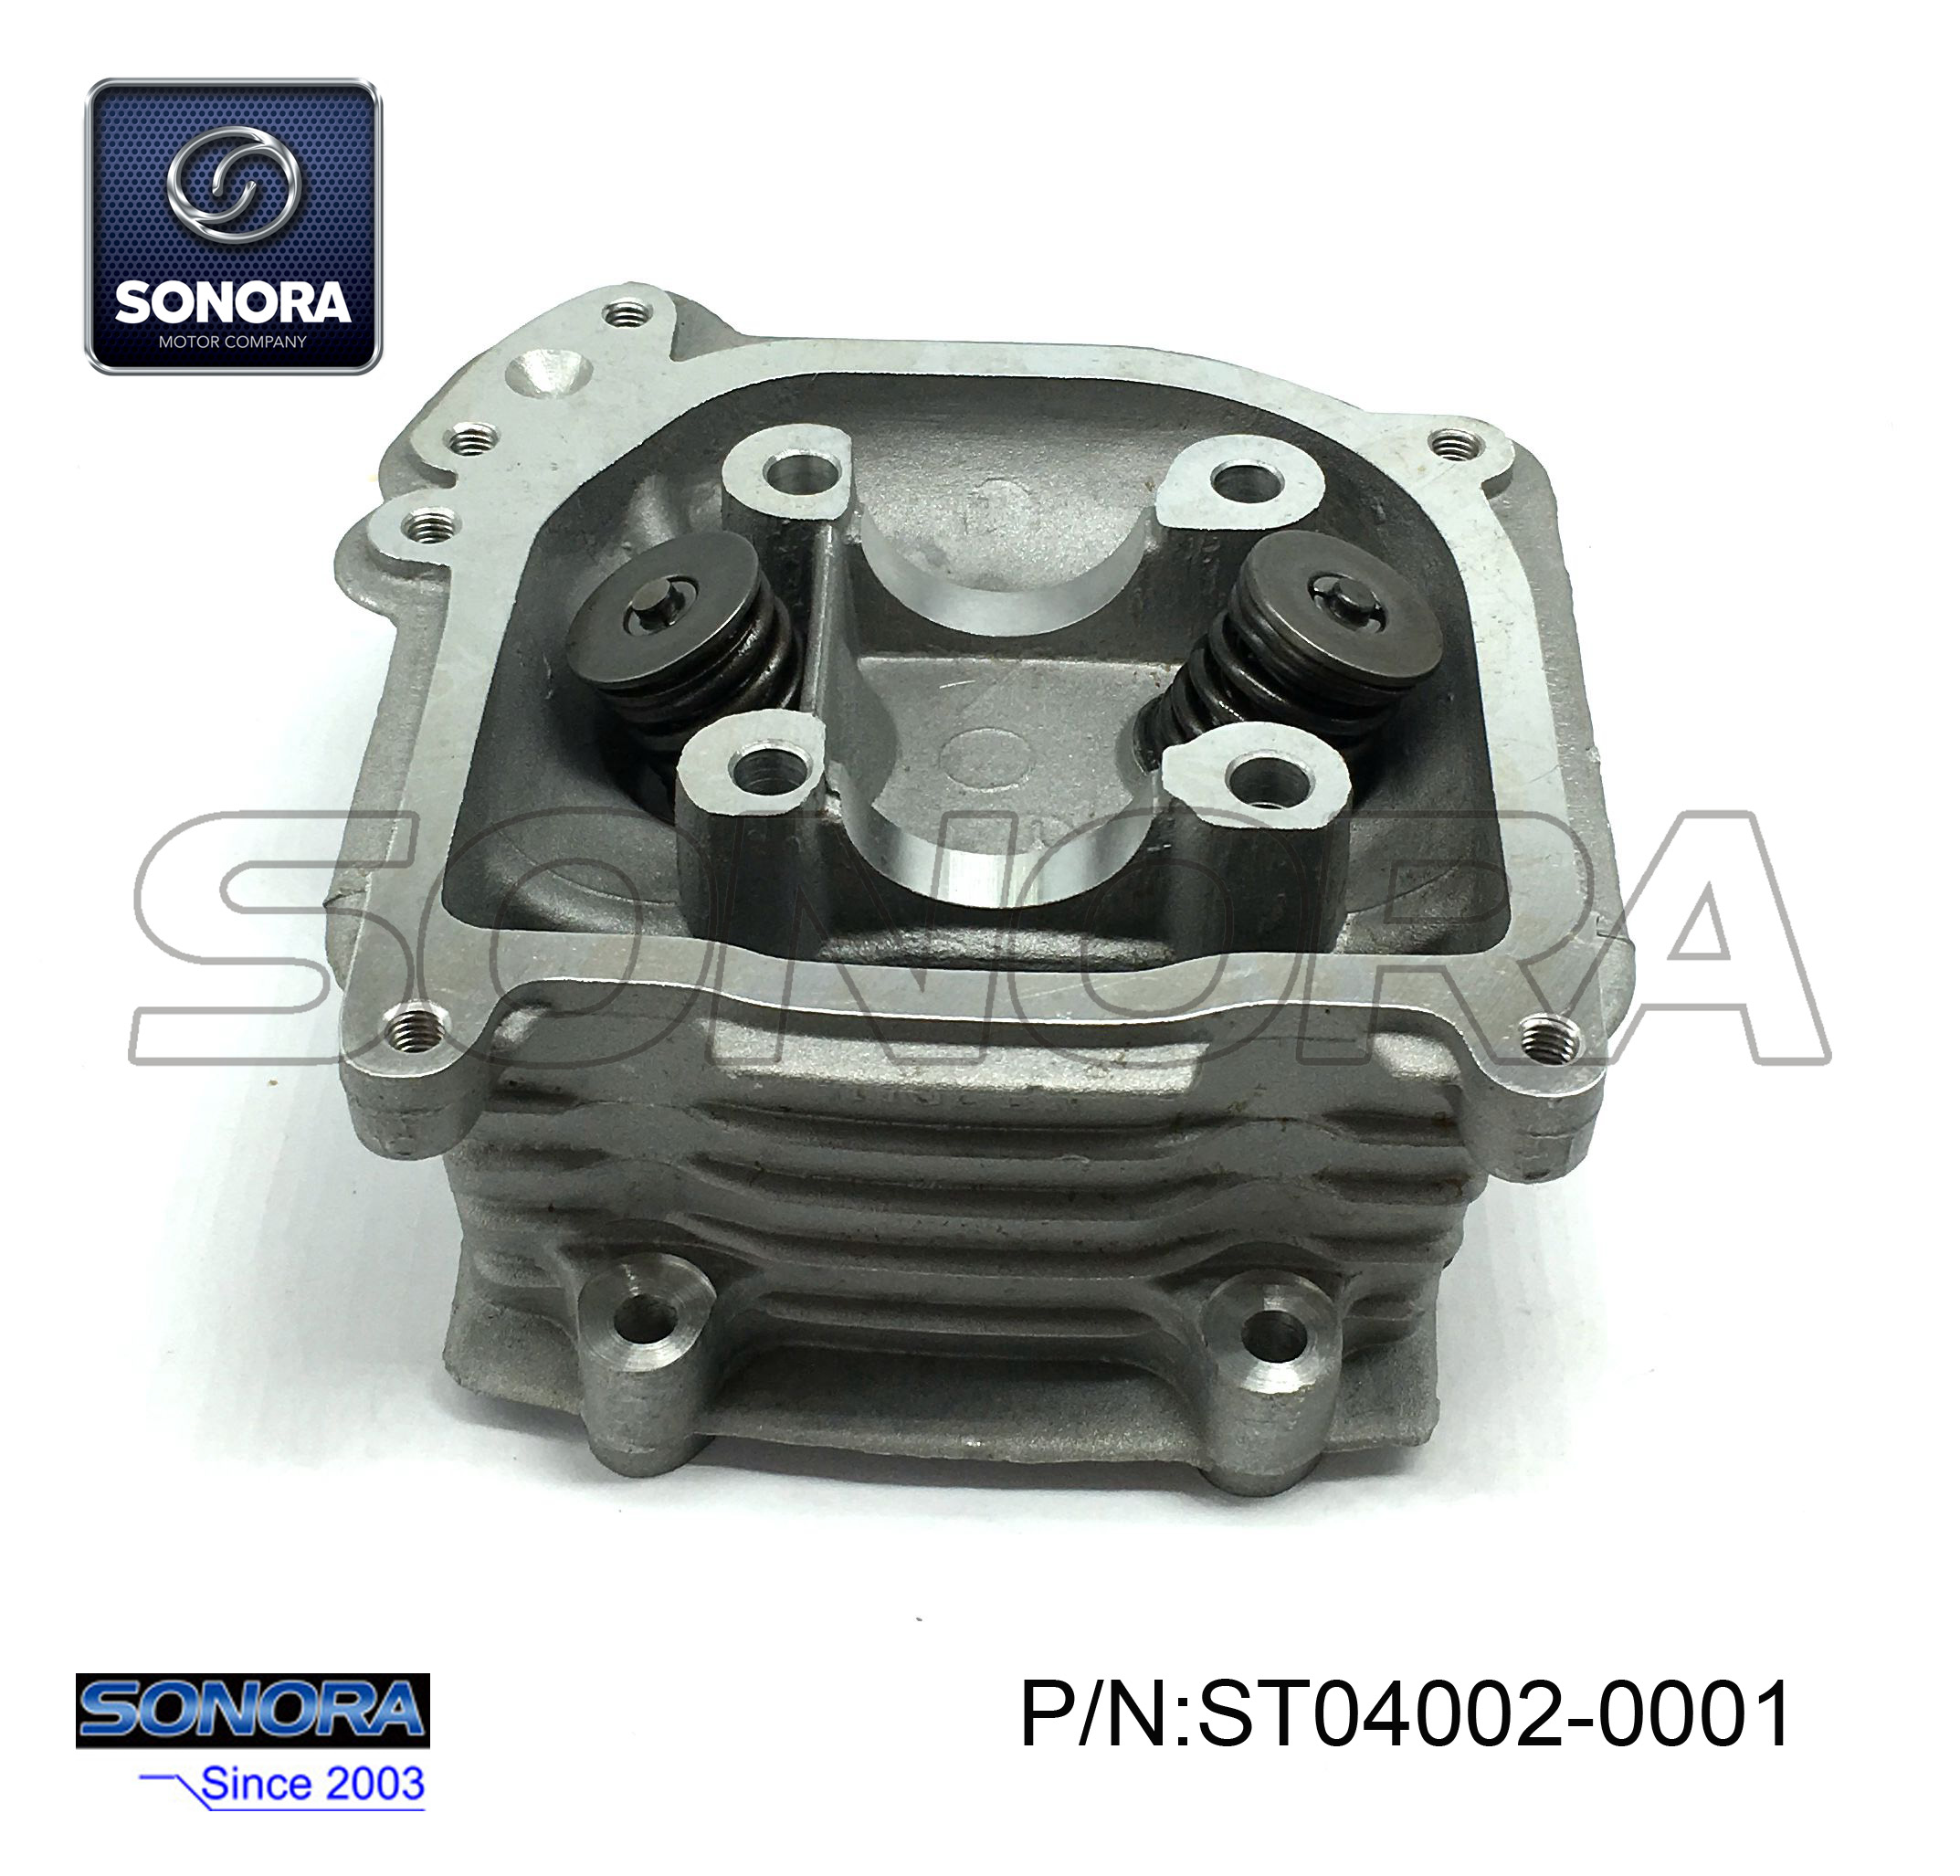 ST04002-0001 GY6-70 139QMAB Cylinder head with valve 47MM,with EGR (1)